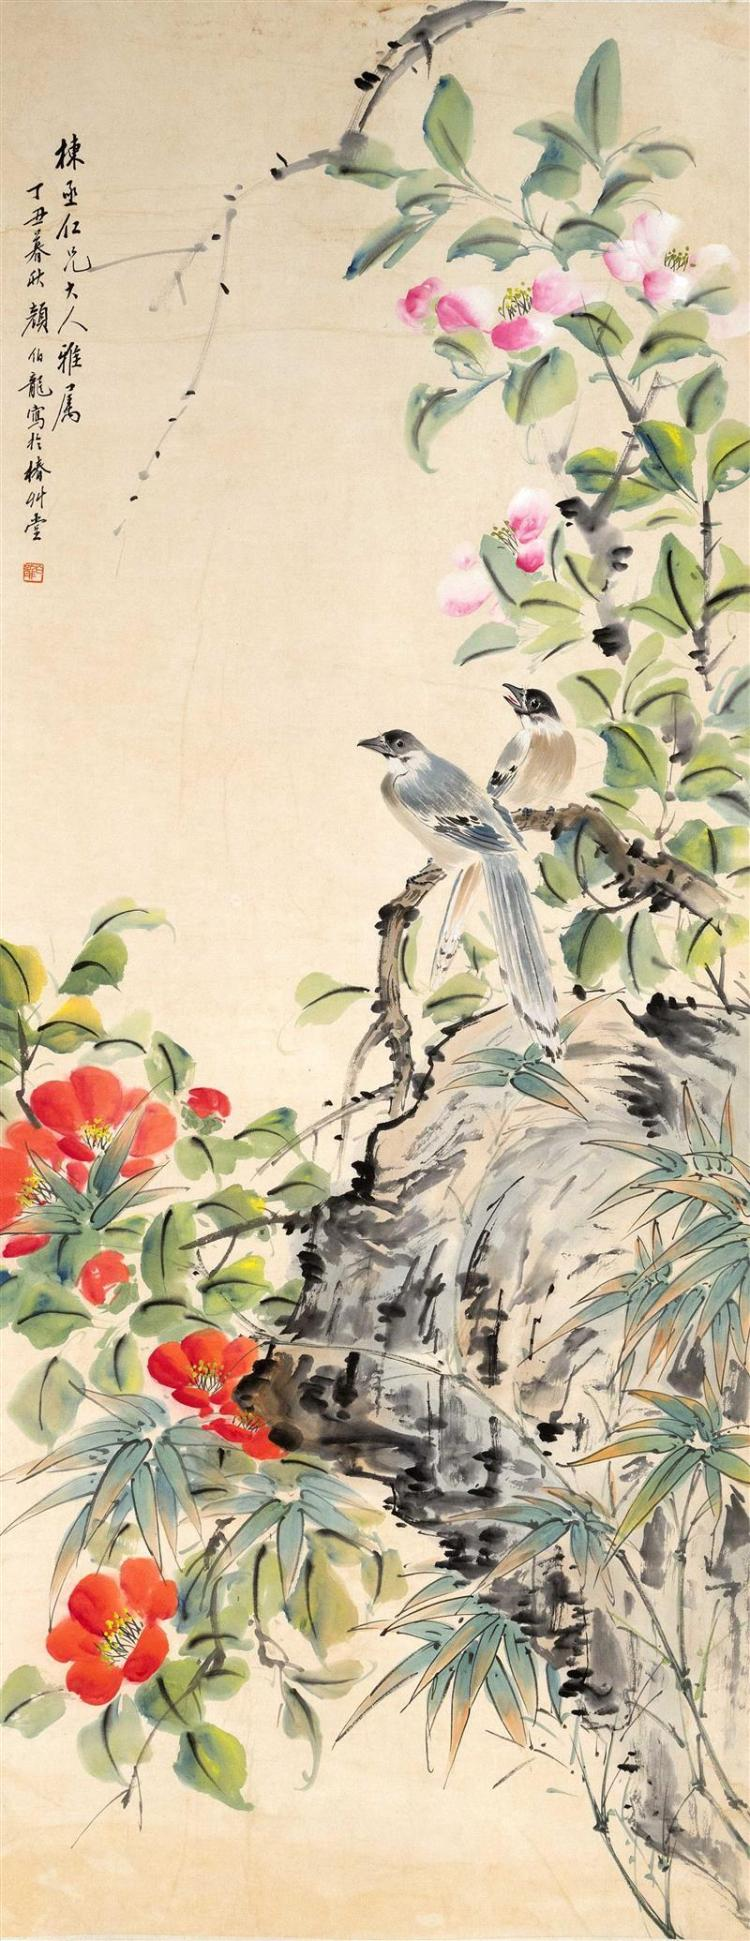 SCROLL PAINTING ON PAPER Attributed to Yi Bolong. Depicting birds and flowers. Signed and seal marked. 50